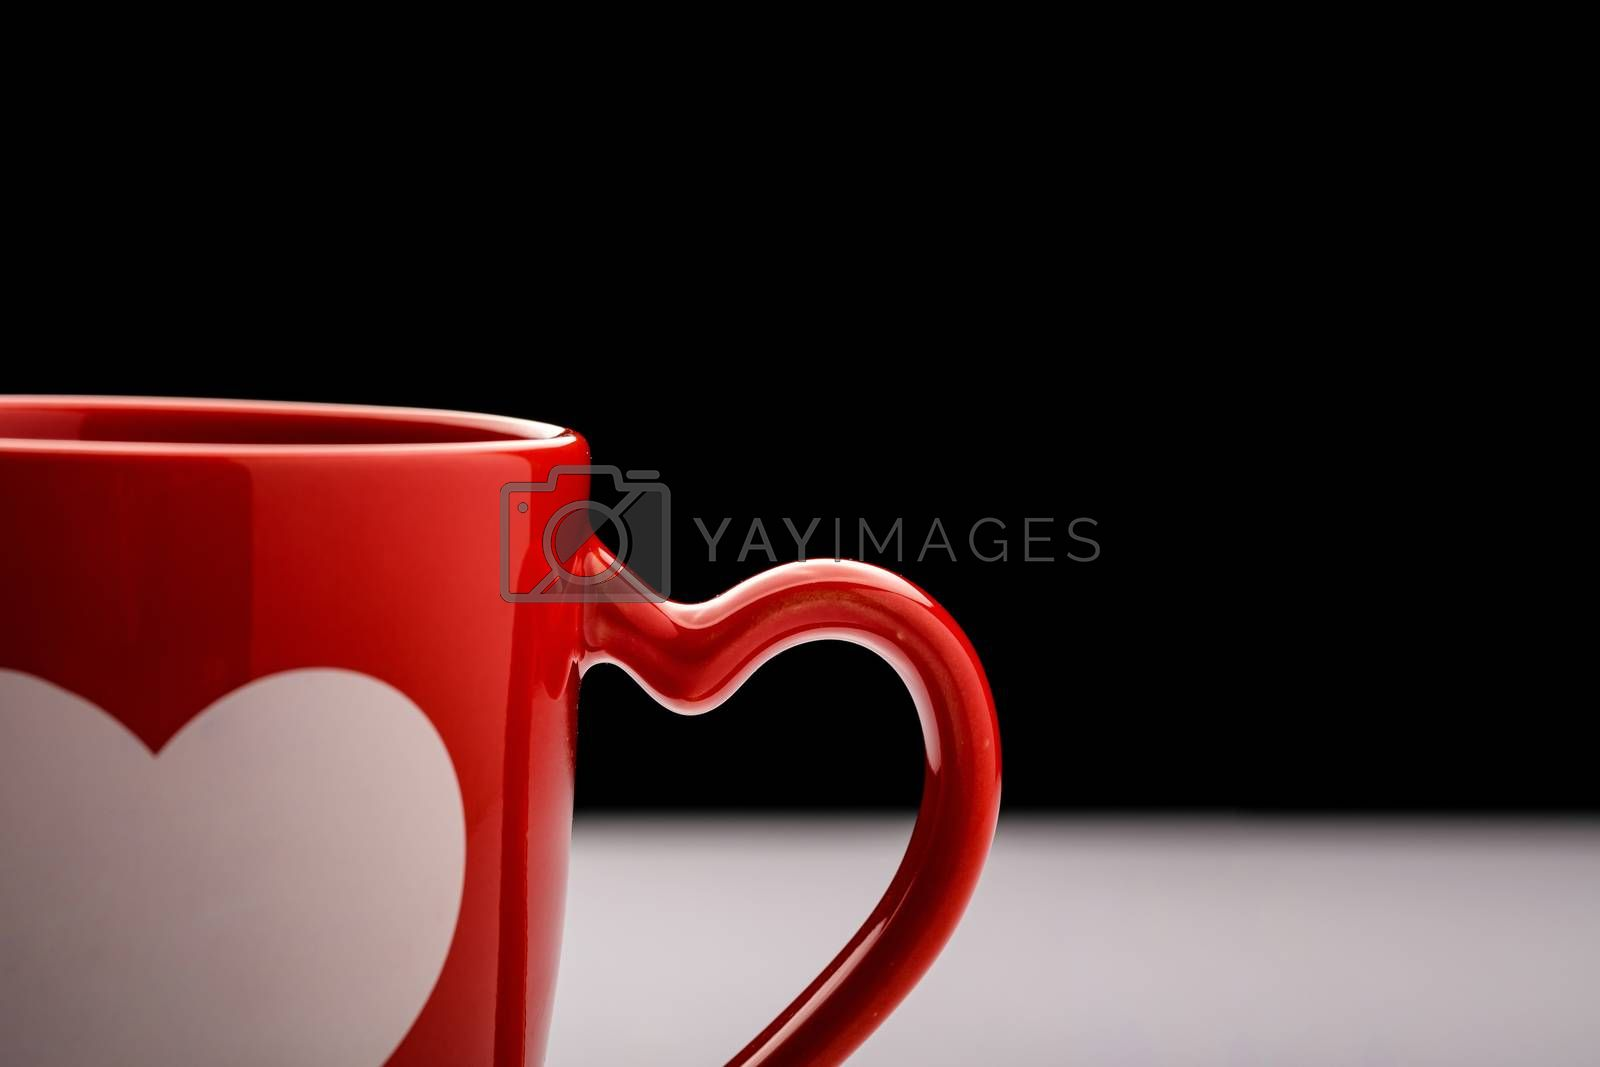 A burgundy coffee mug with heart shaped handle on white table with dark background.